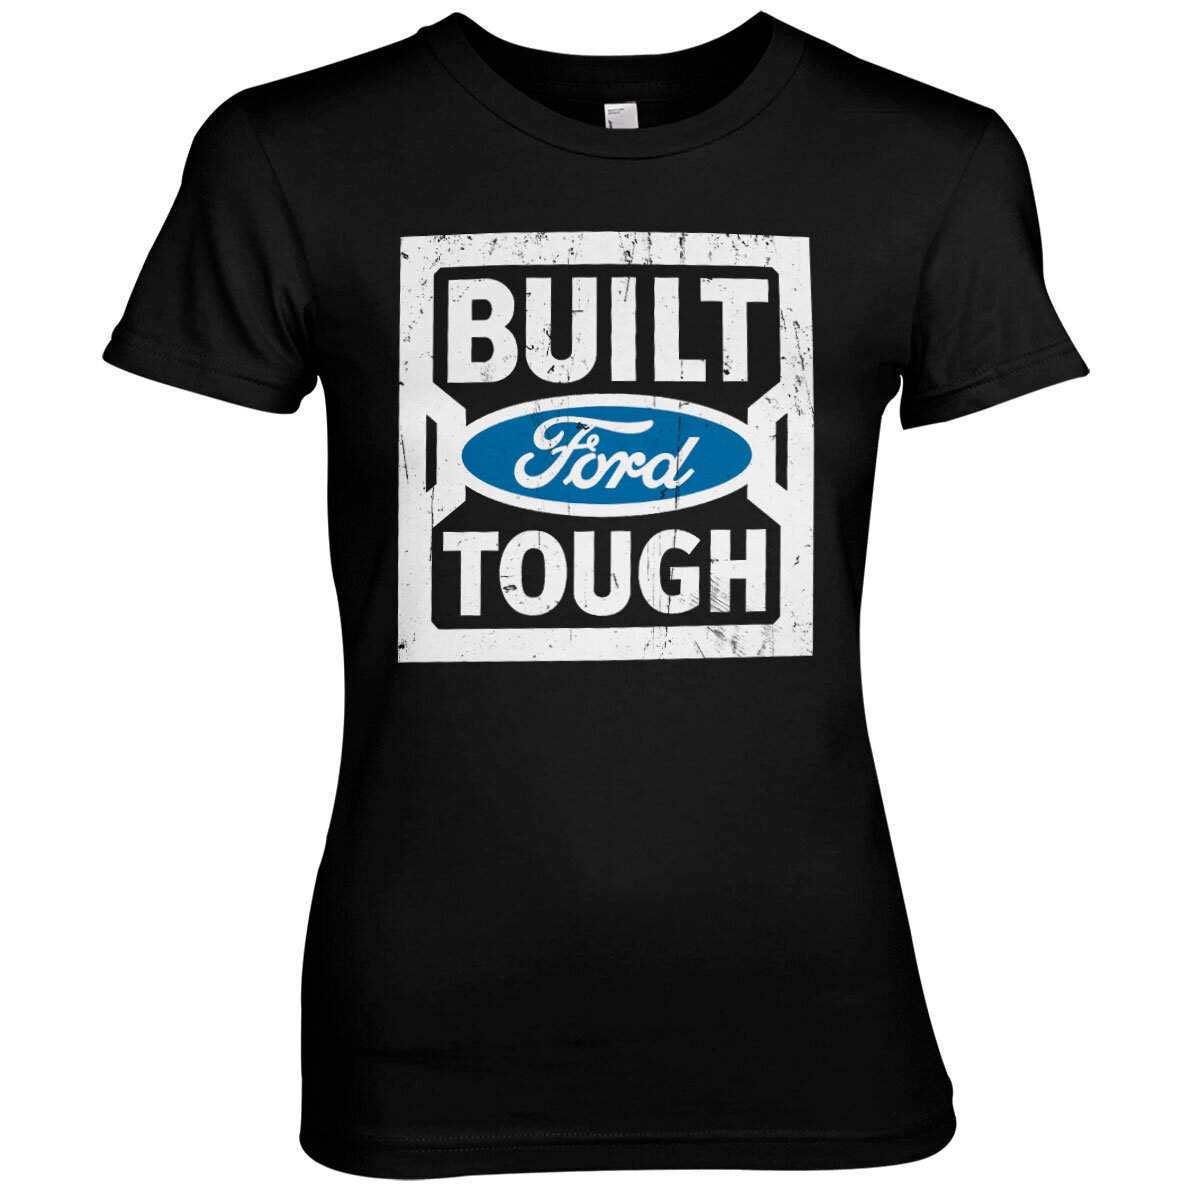 Ford - Built Tough Girly Tee